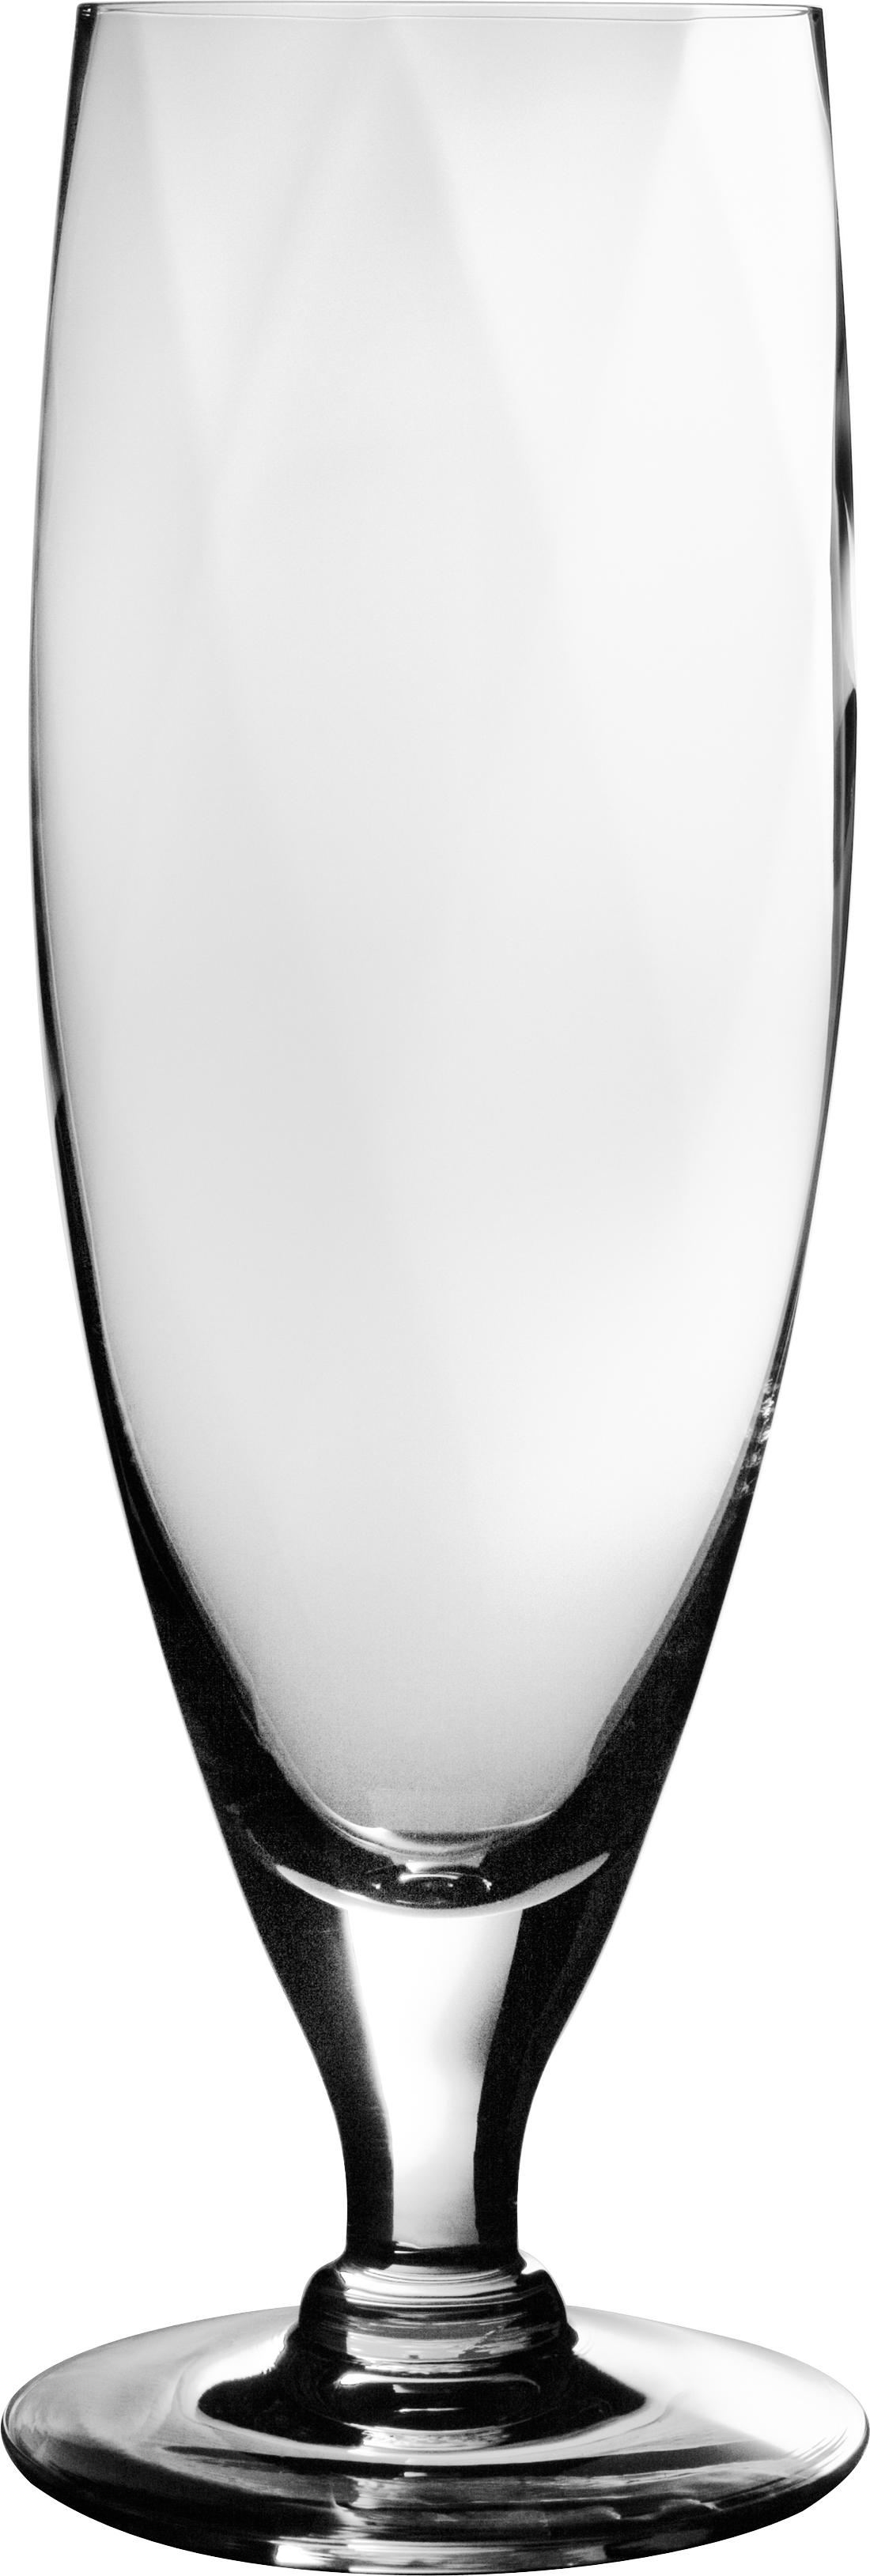 Glass PNG - 4570